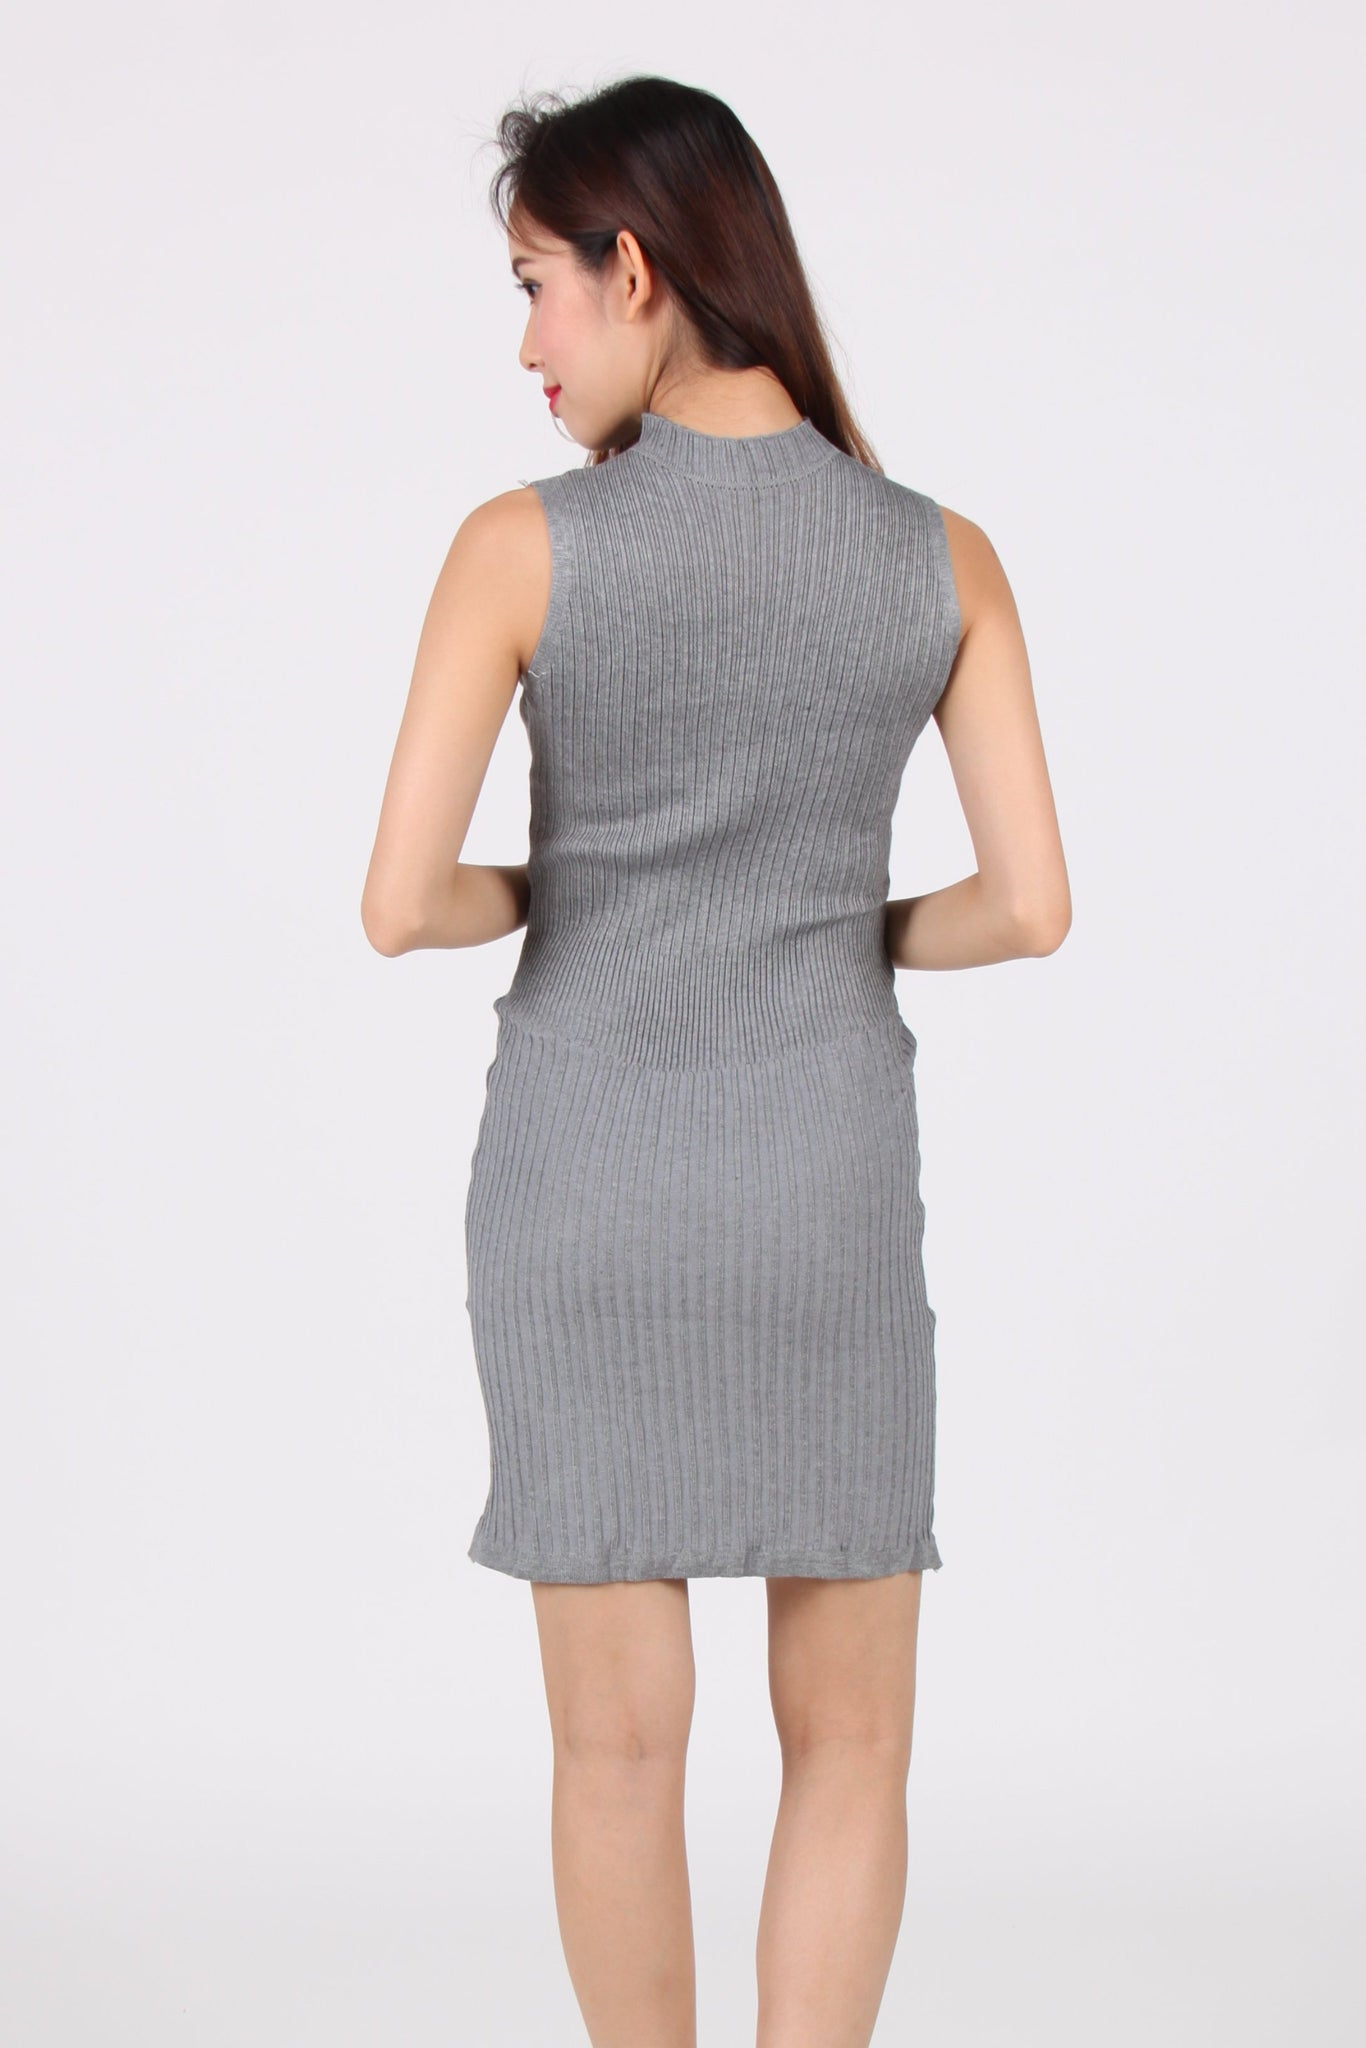 Sleeveless Vertical Bar Bodycon Dress in Light Grey